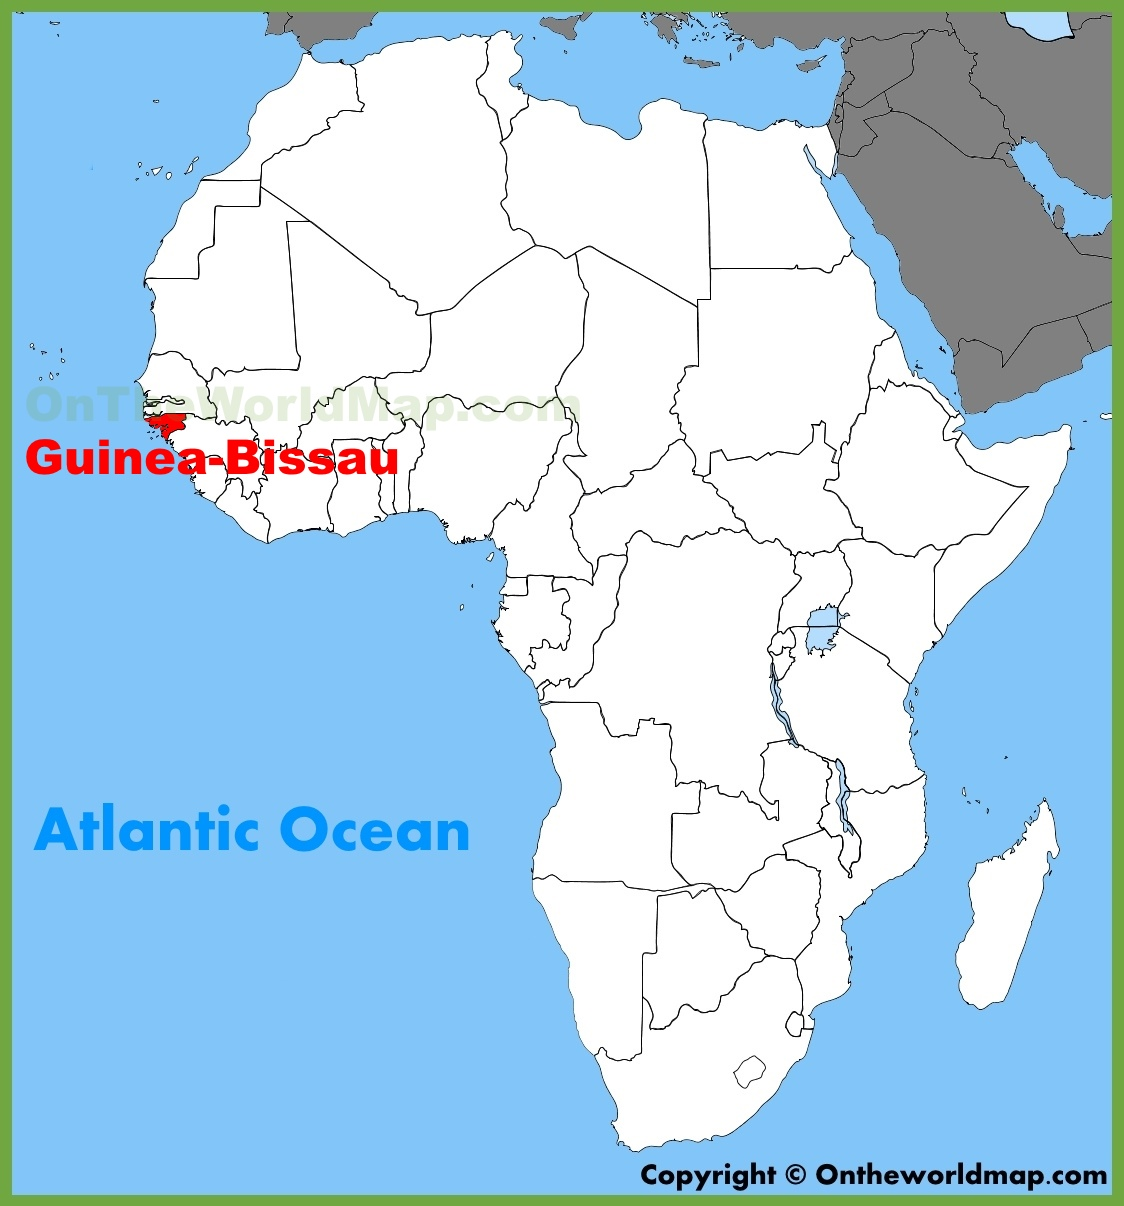 Guinea Bissau location on the Africa map